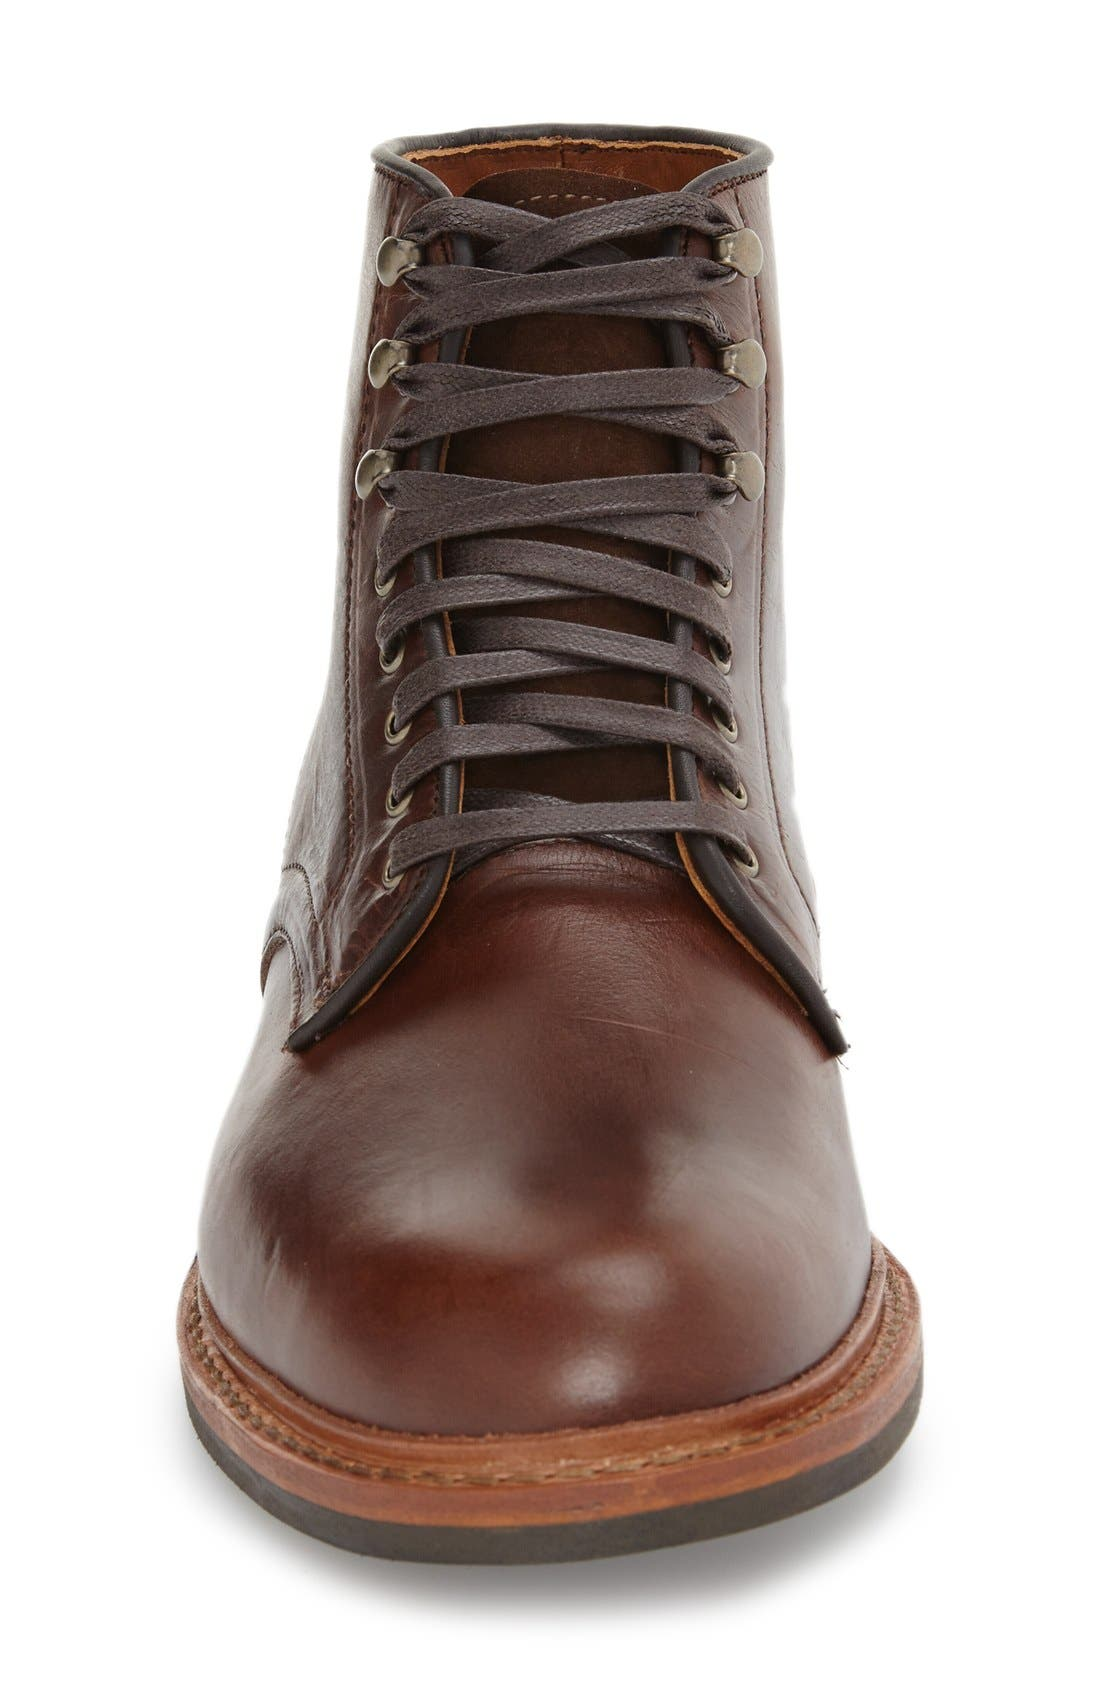 'Higgins Mill' Plain Toe Boot,                             Alternate thumbnail 3, color,                             BROWN LEATHER